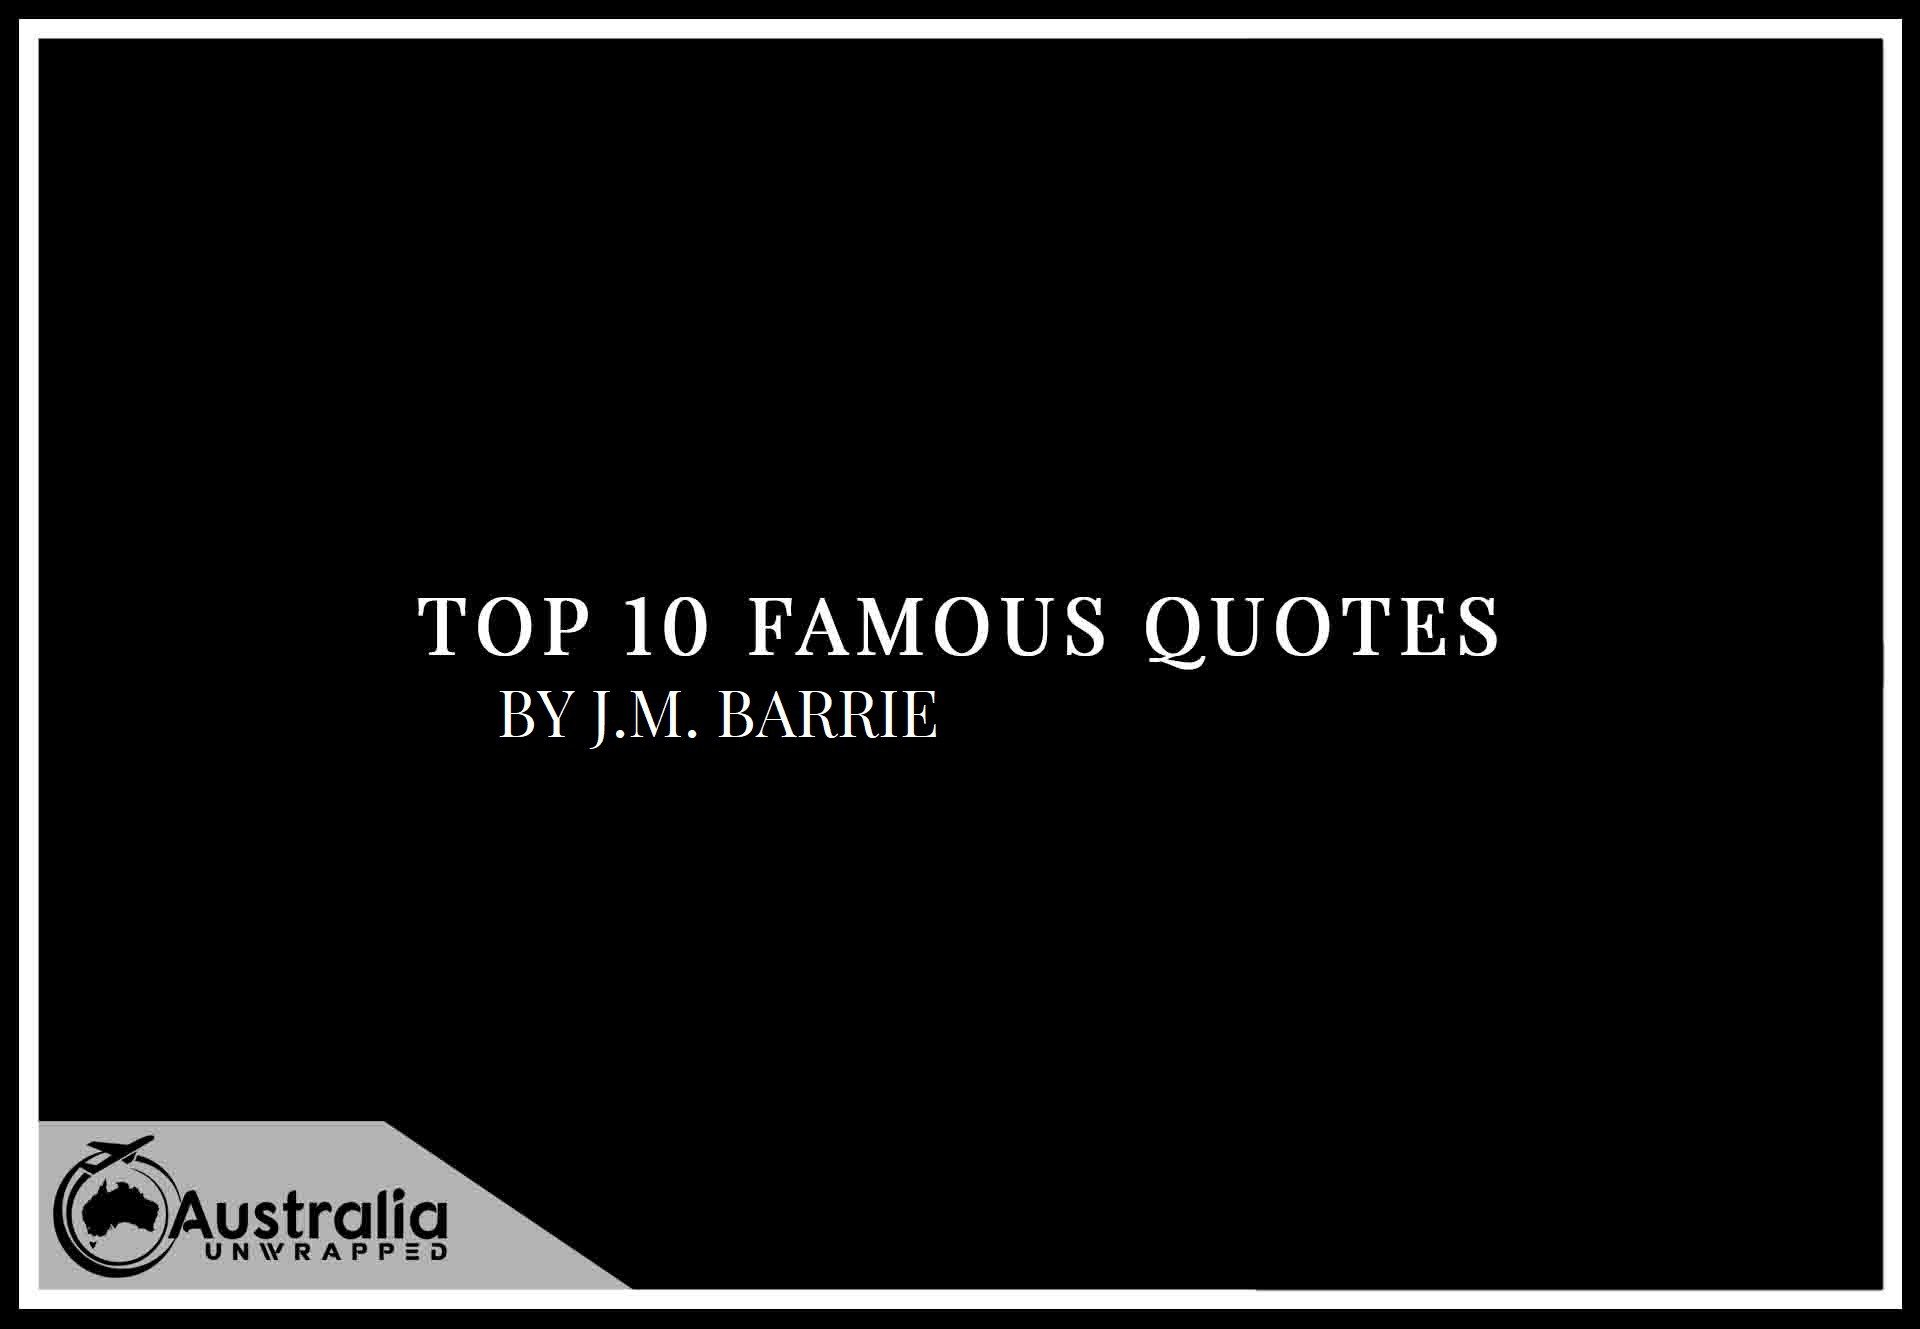 Top 10 Famous Quotes by Author J.M. Barrie